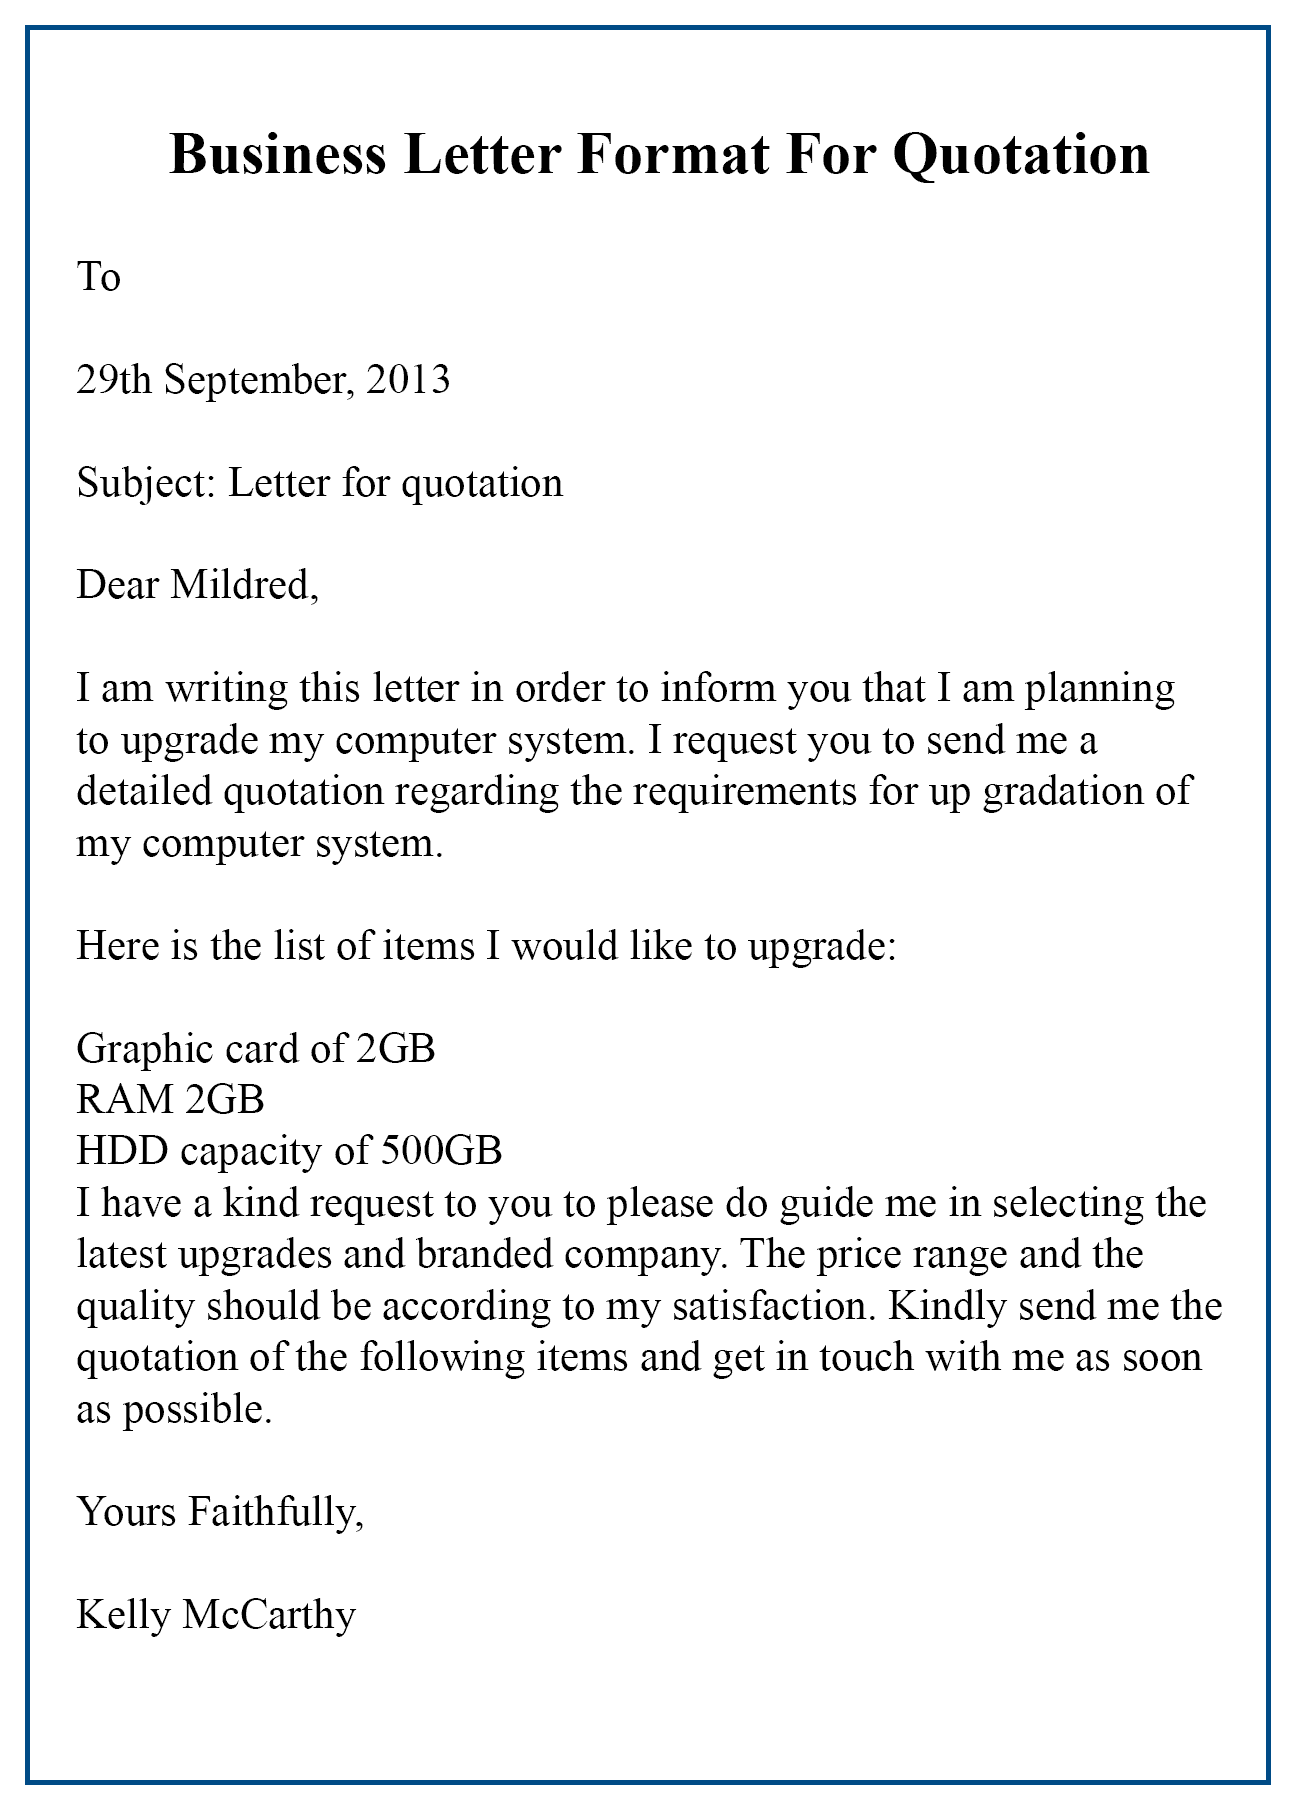 Business Quotation Letter Format